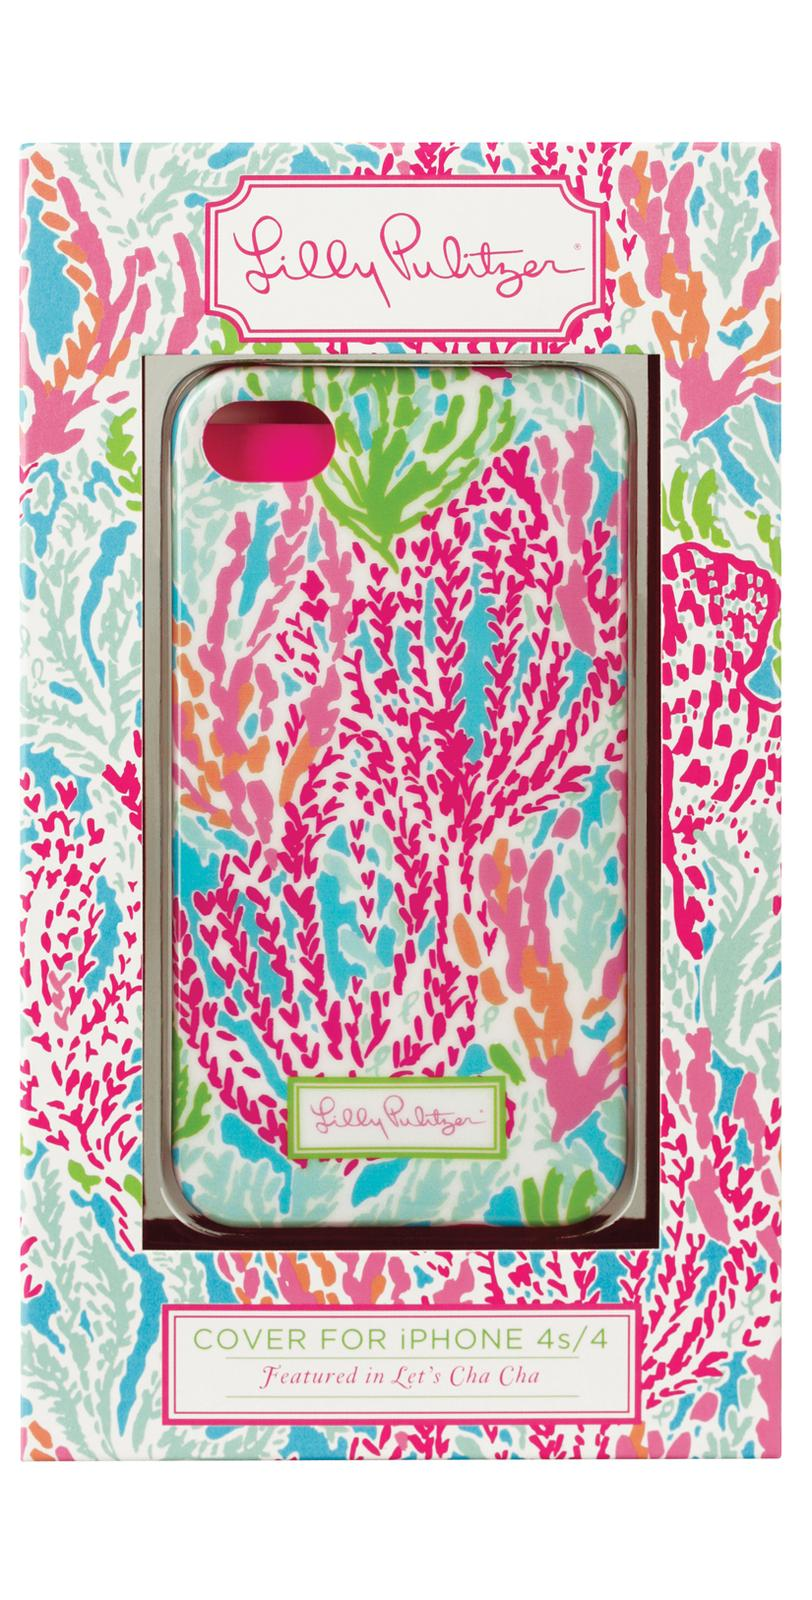 Enchanting Lilly Pulitzer Phone Case for Phone Accessories Ideas: Vera Bradley Phone Cases | Vera Bradley Ipad Covers | Lilly Pulitzer Phone Case